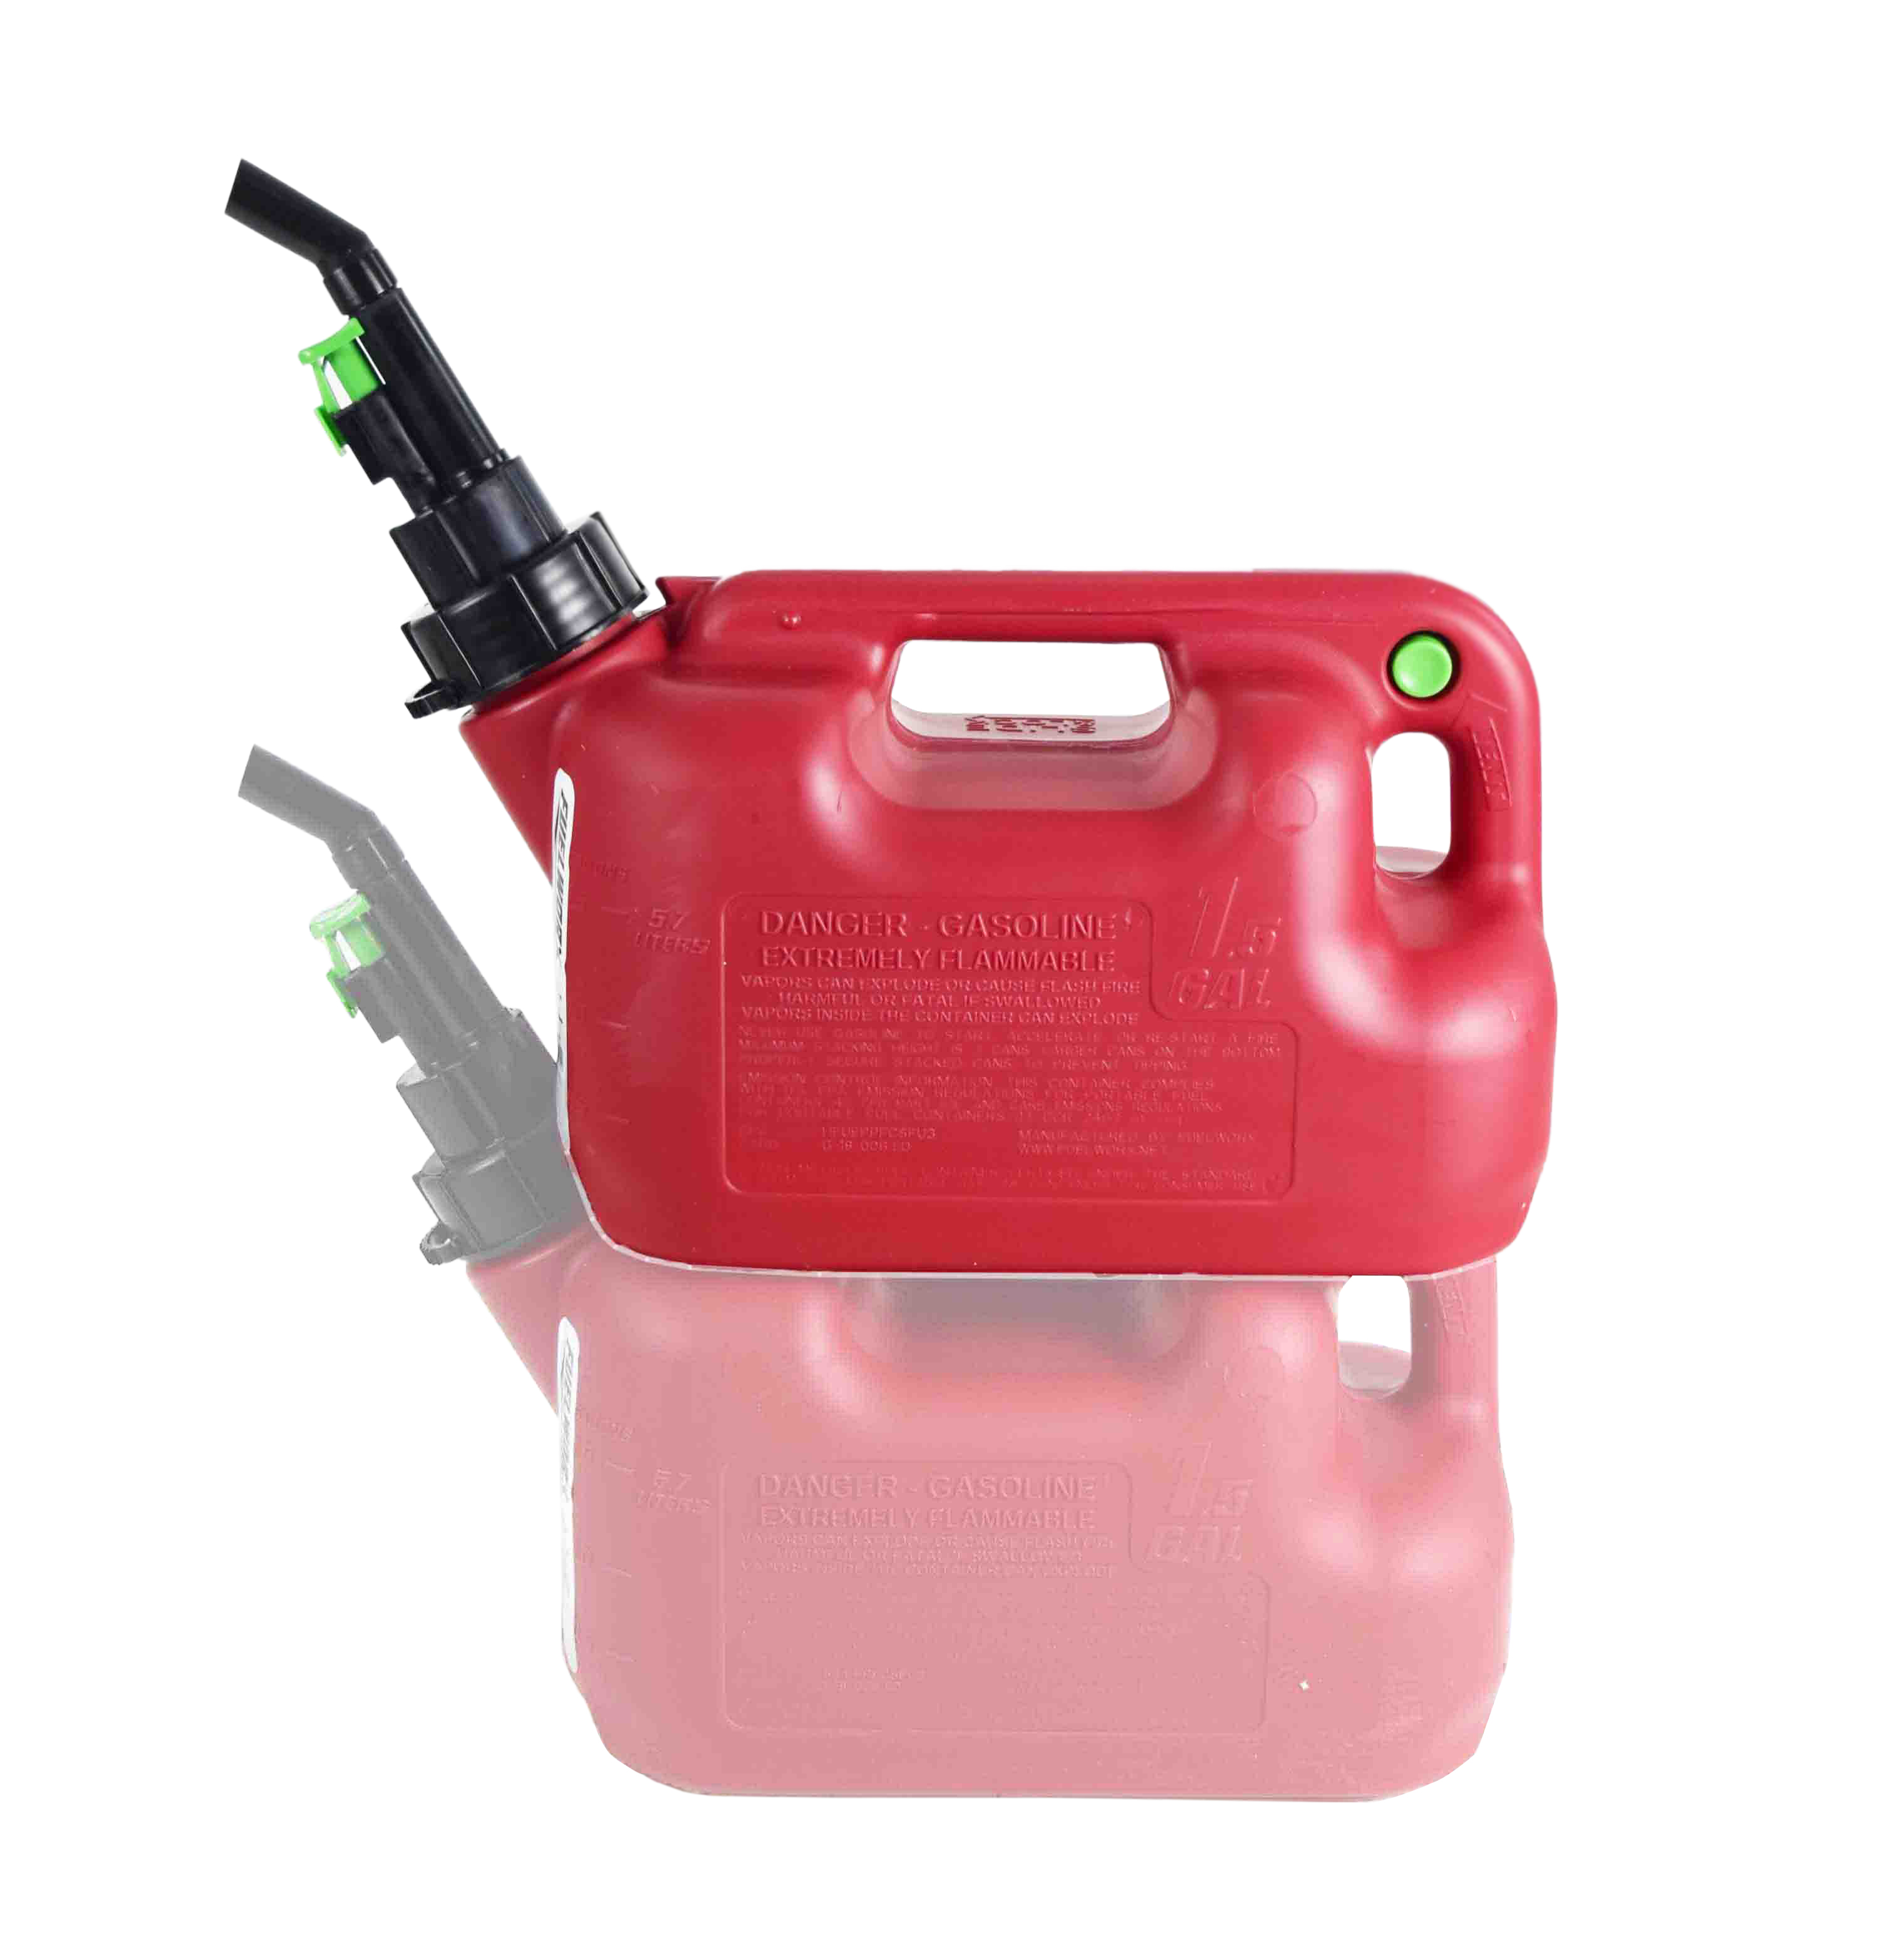 Fuelworx-Red-1.5-Gallon-Stackable-Fast-Pour-Gas-Fuel-Cans-CARB-Compliant-Made-in-The-USA-1.5-Gallon-Gas-Can-Single-image-1